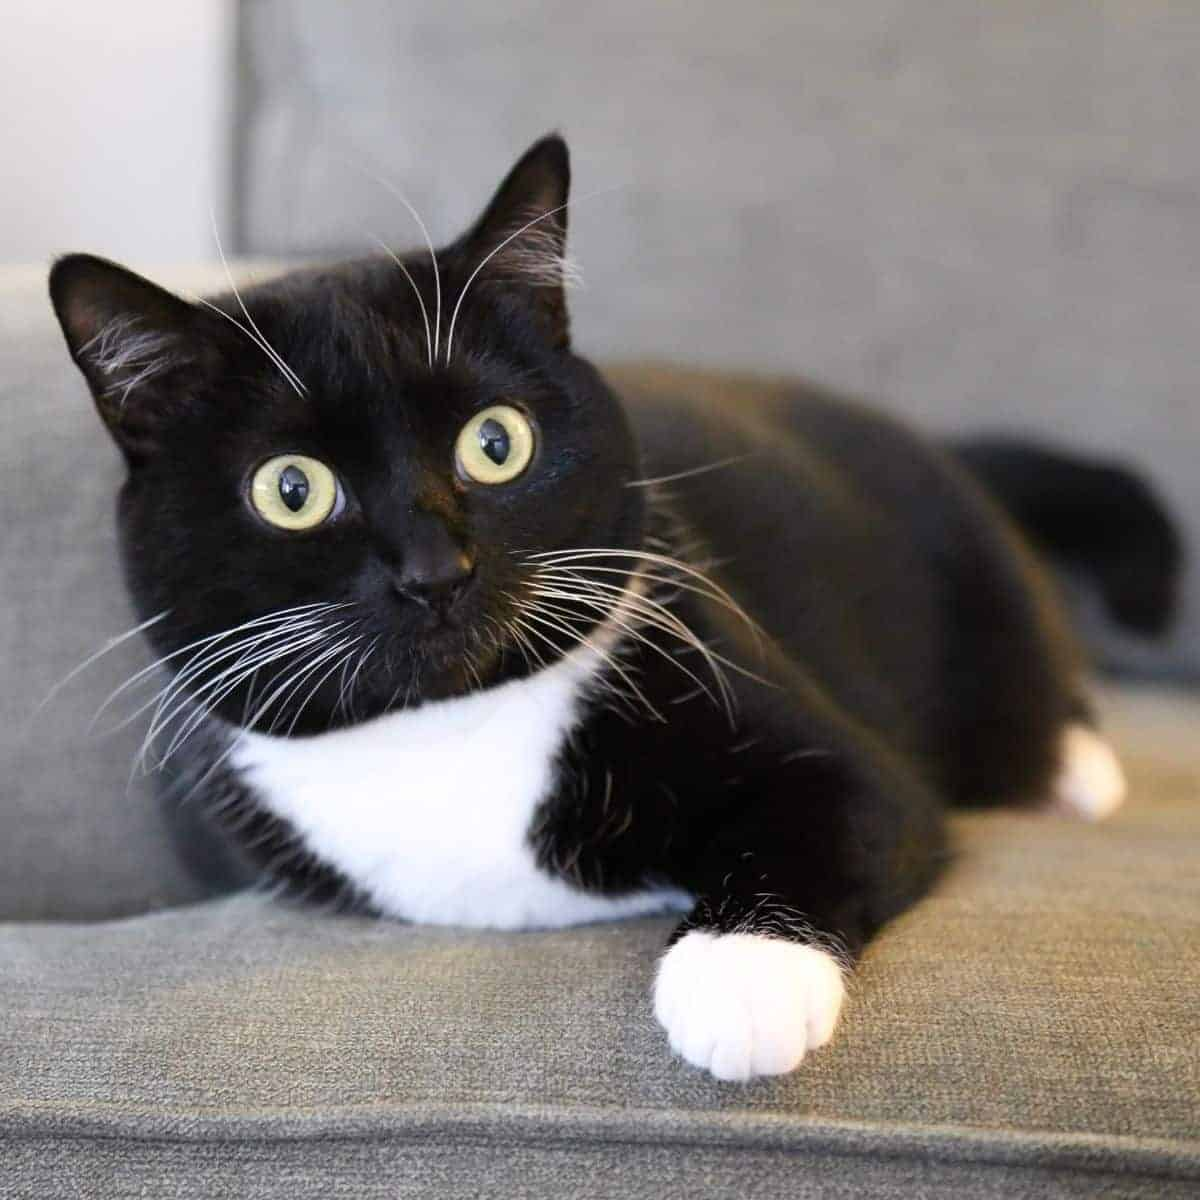 Tuxedo cat laying on a couch.